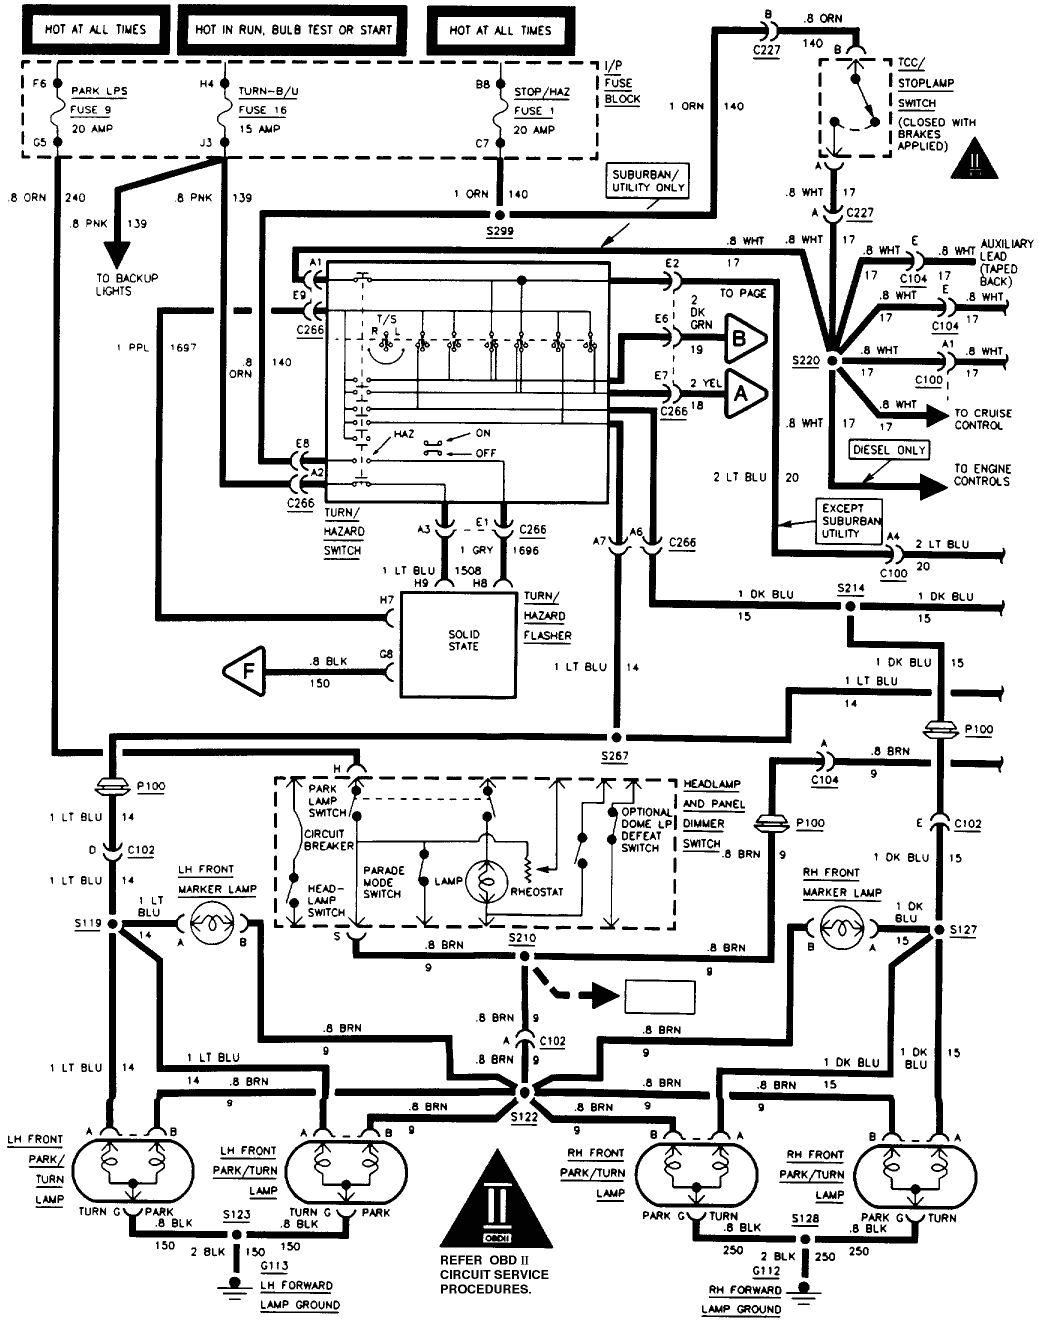 97 chevy z71 wiring diagram wiring diagram experts gif